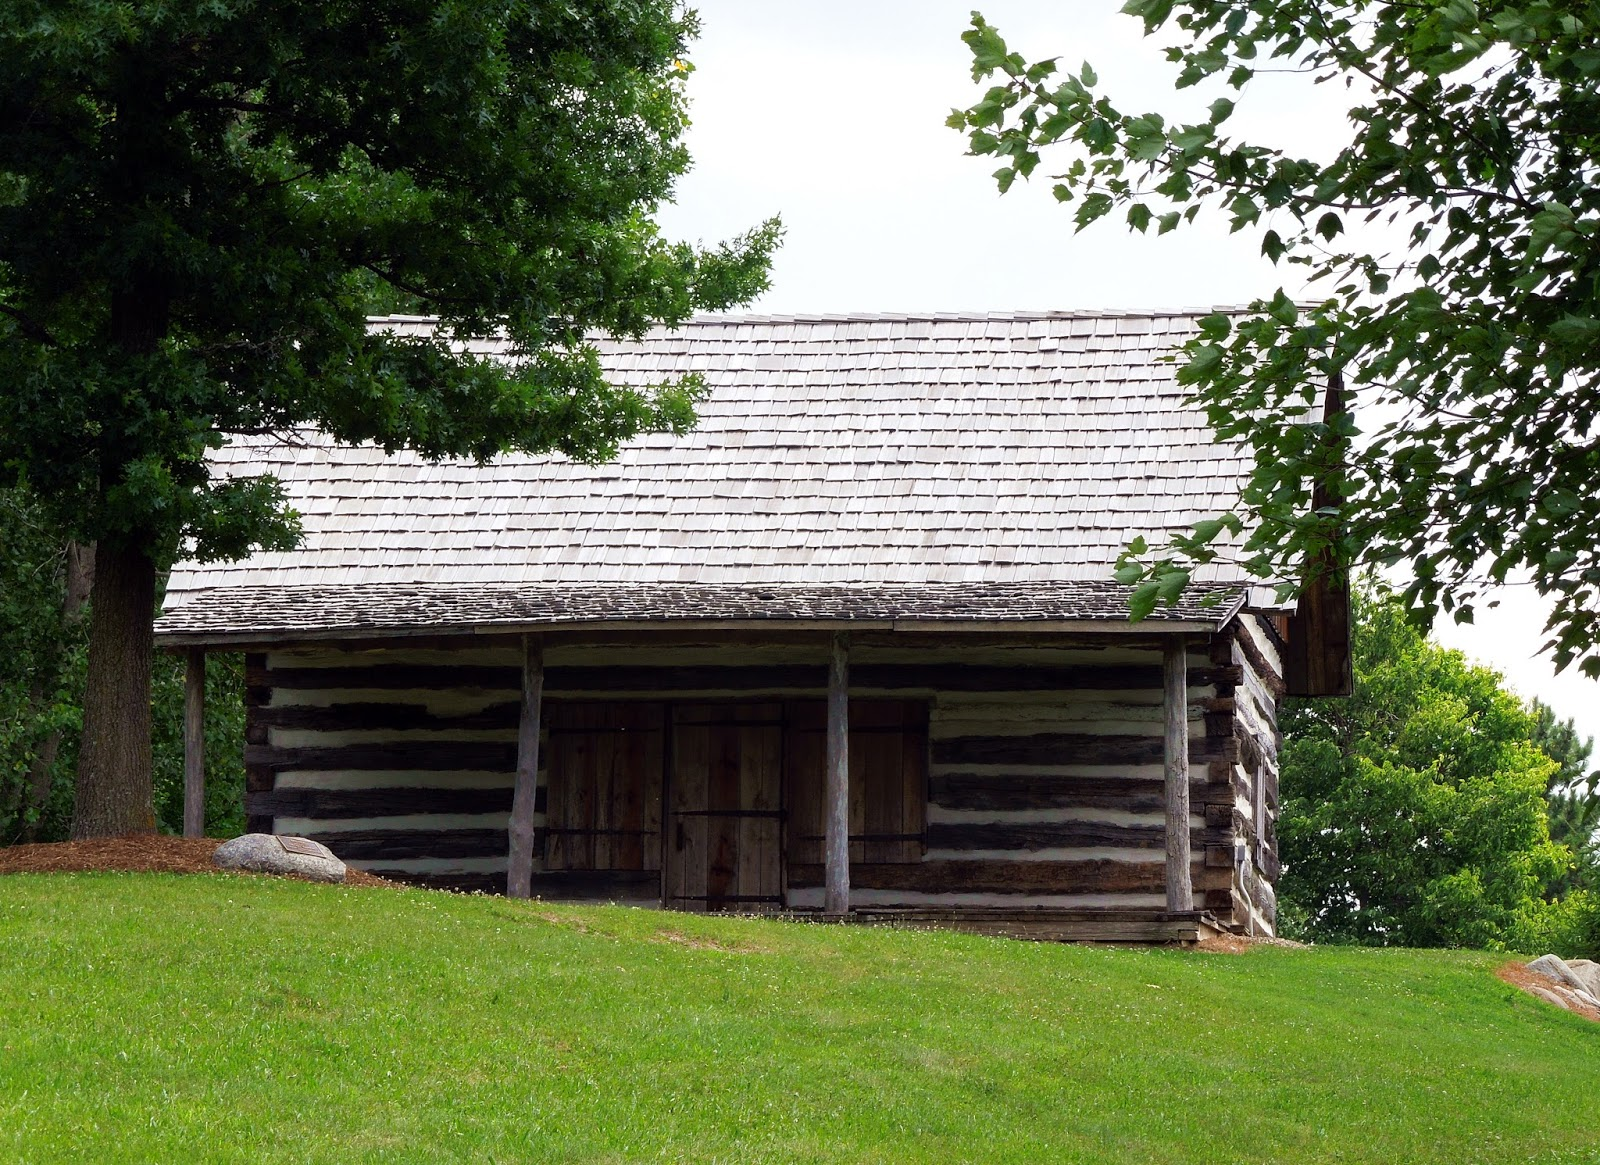 the log cabin was moved to the village in 2005 this was another building we were unable to visit